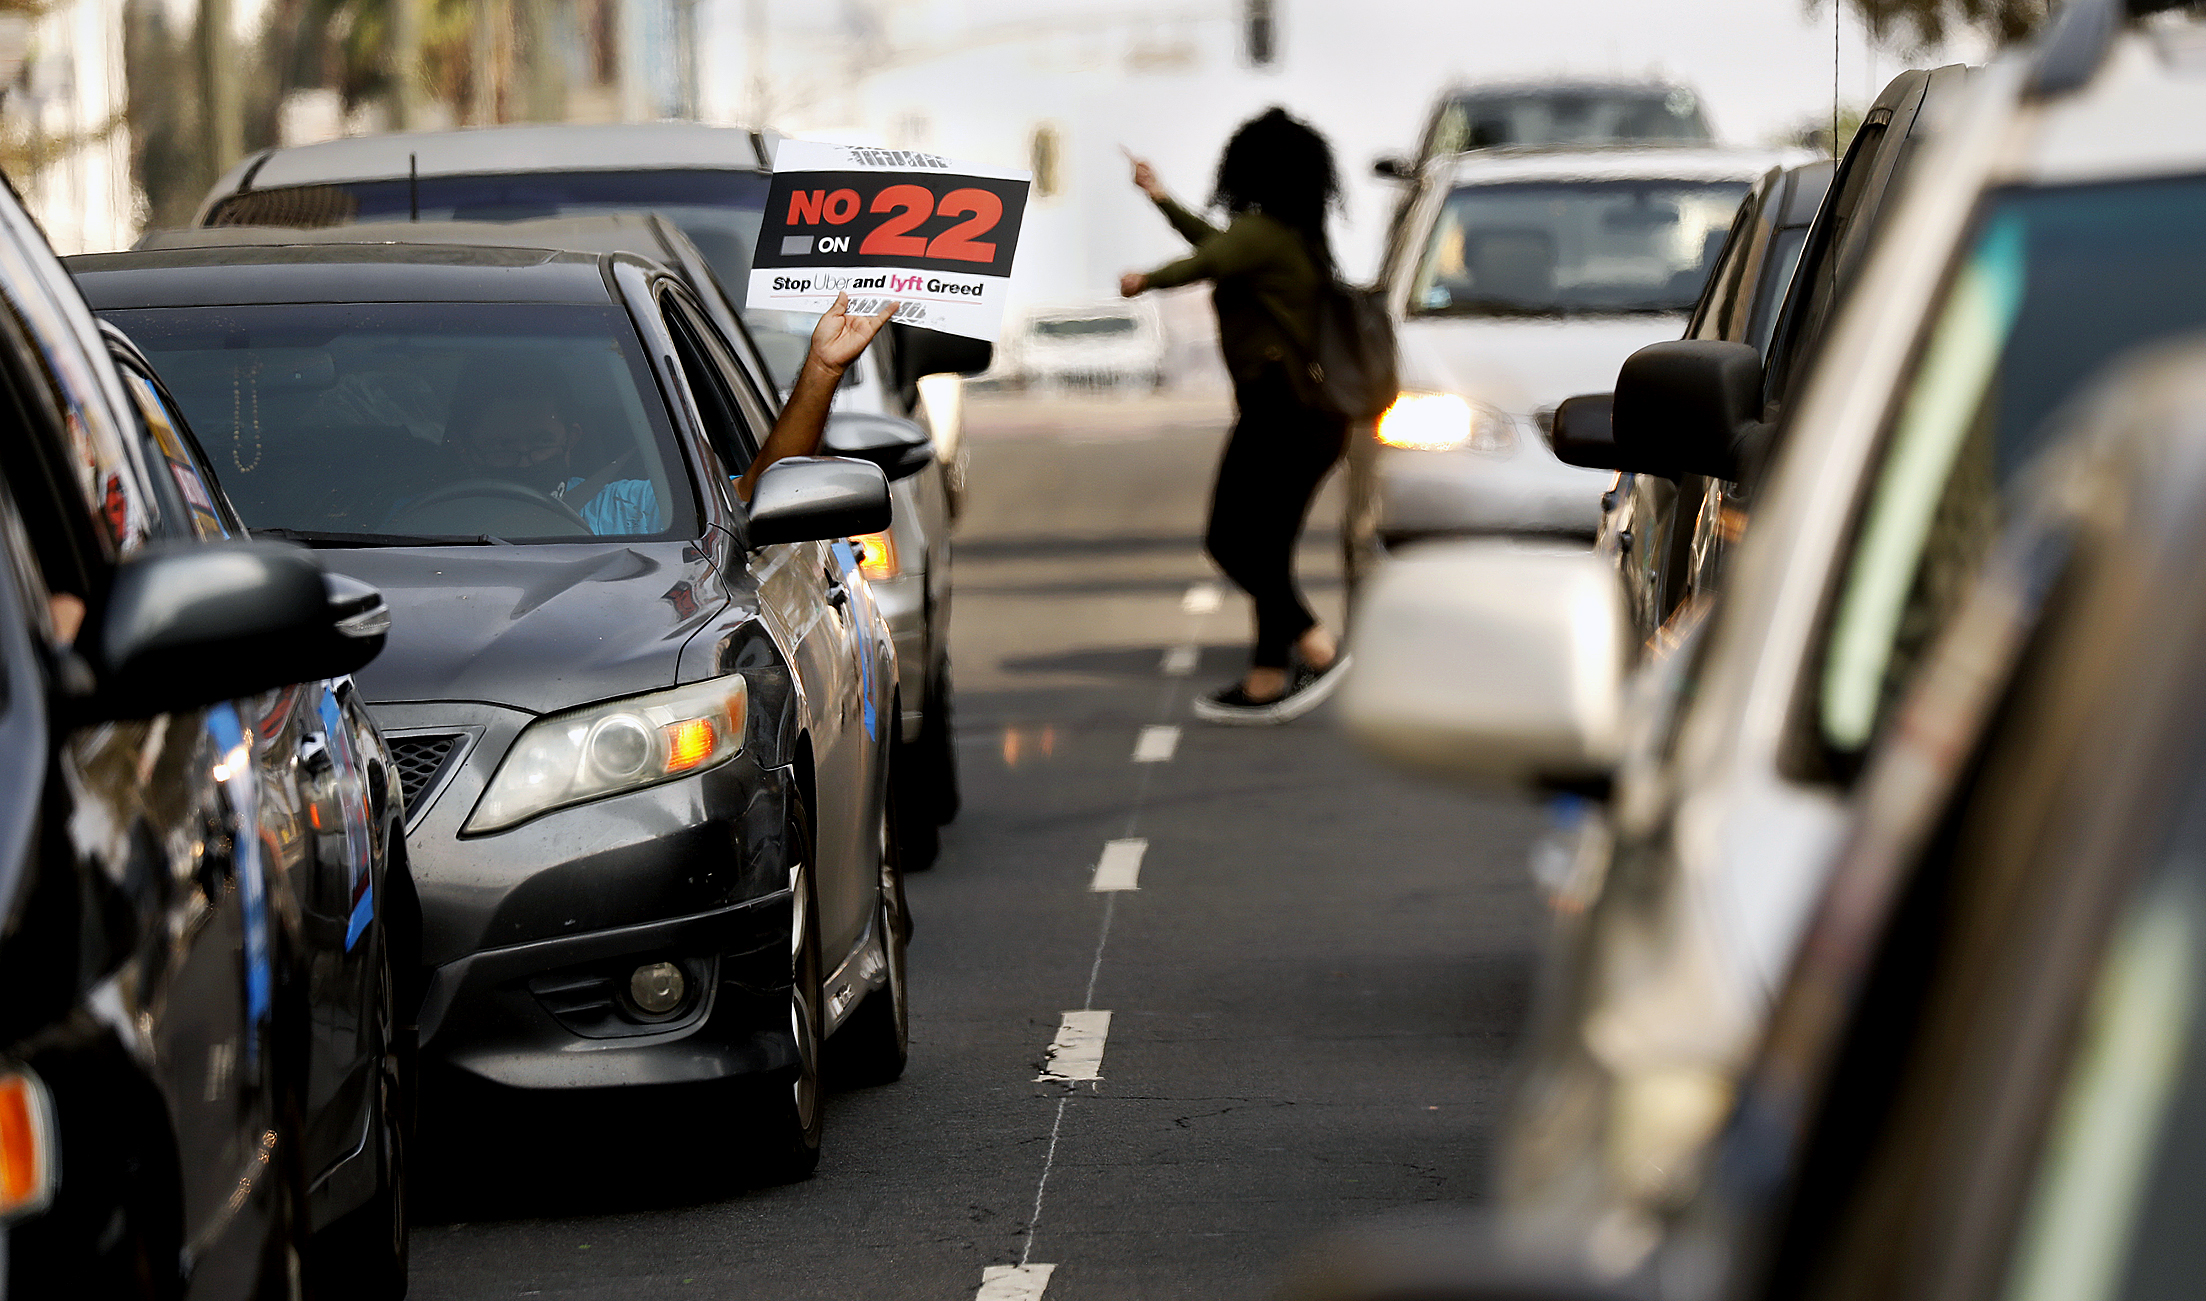 Calif Uber Lyft Measure Could Take Toll On Asians Who Are 1 In 3 Drivers In Bay Area